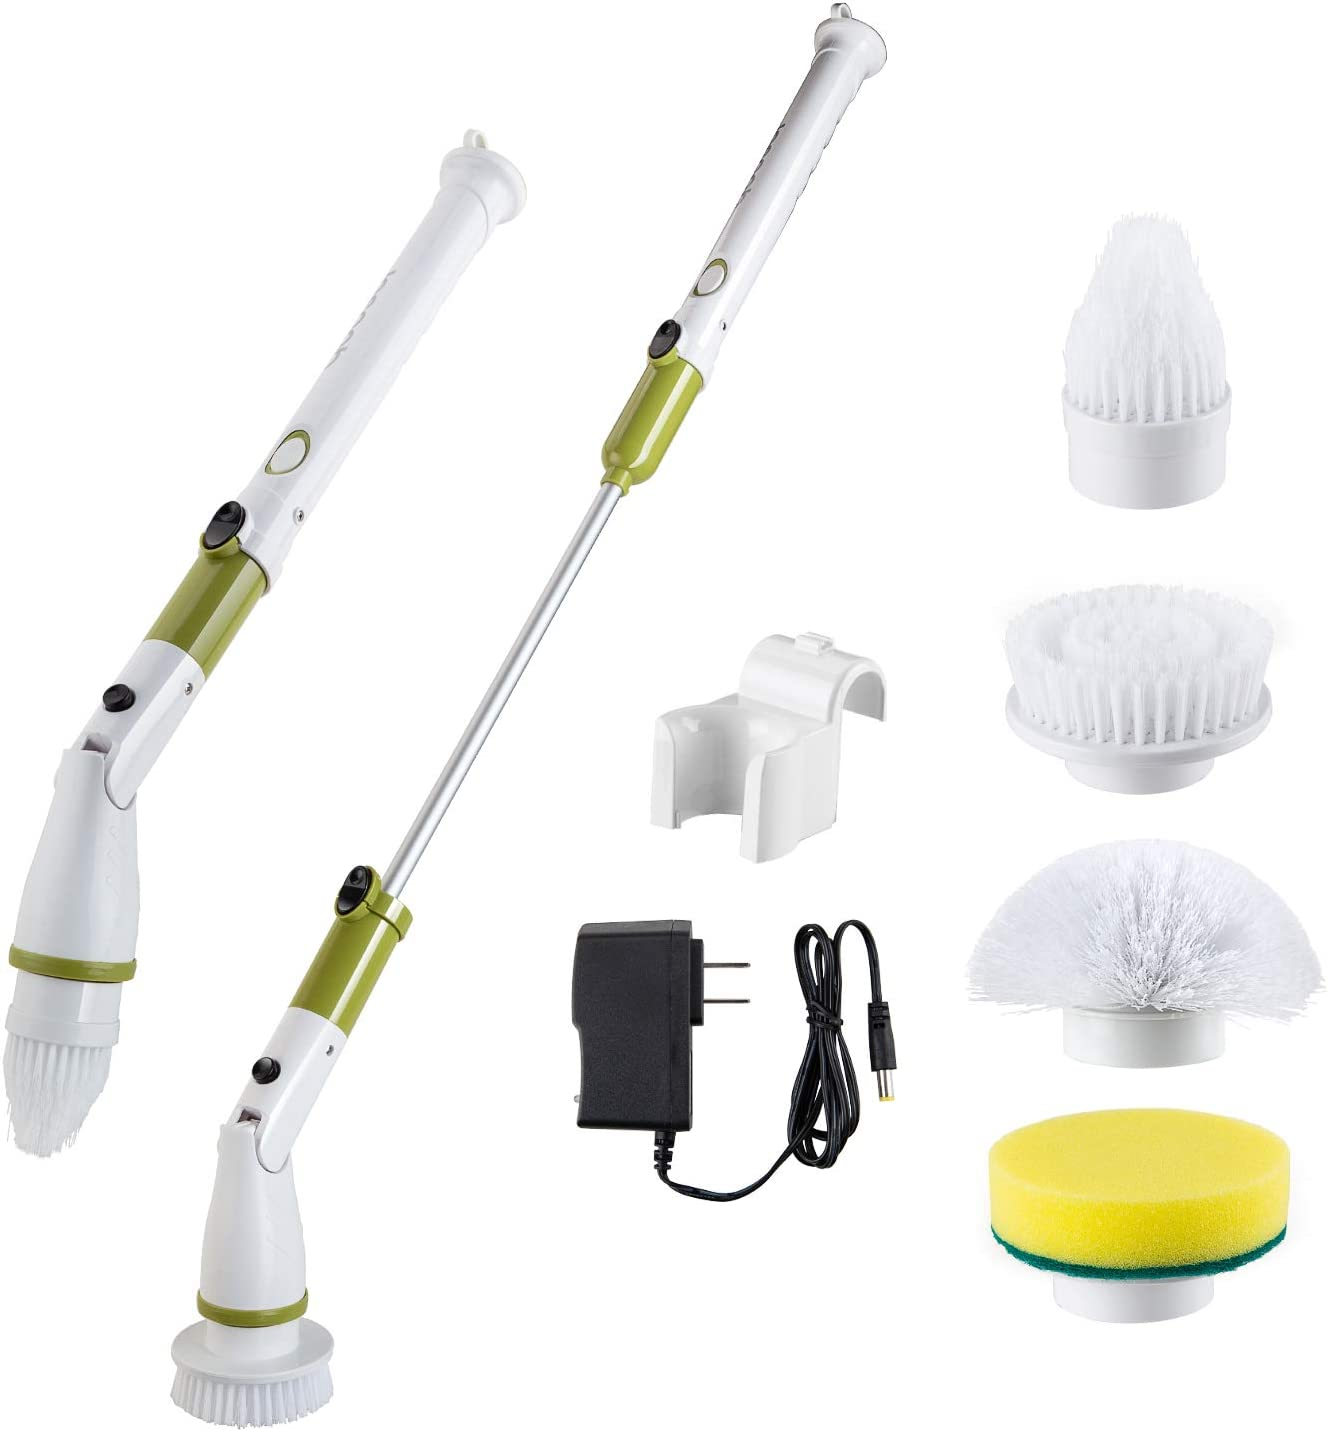 Electric Spin Scrubber Upgraded Power Scrubber 360 Cordless Tub and Tile Scrubber with 4 Replaceable Shower Scrubber Brush Heads, 1 Extension Arm for Cleaning Bathroom, Floor, Wall, Kitchen, Tub, Tile